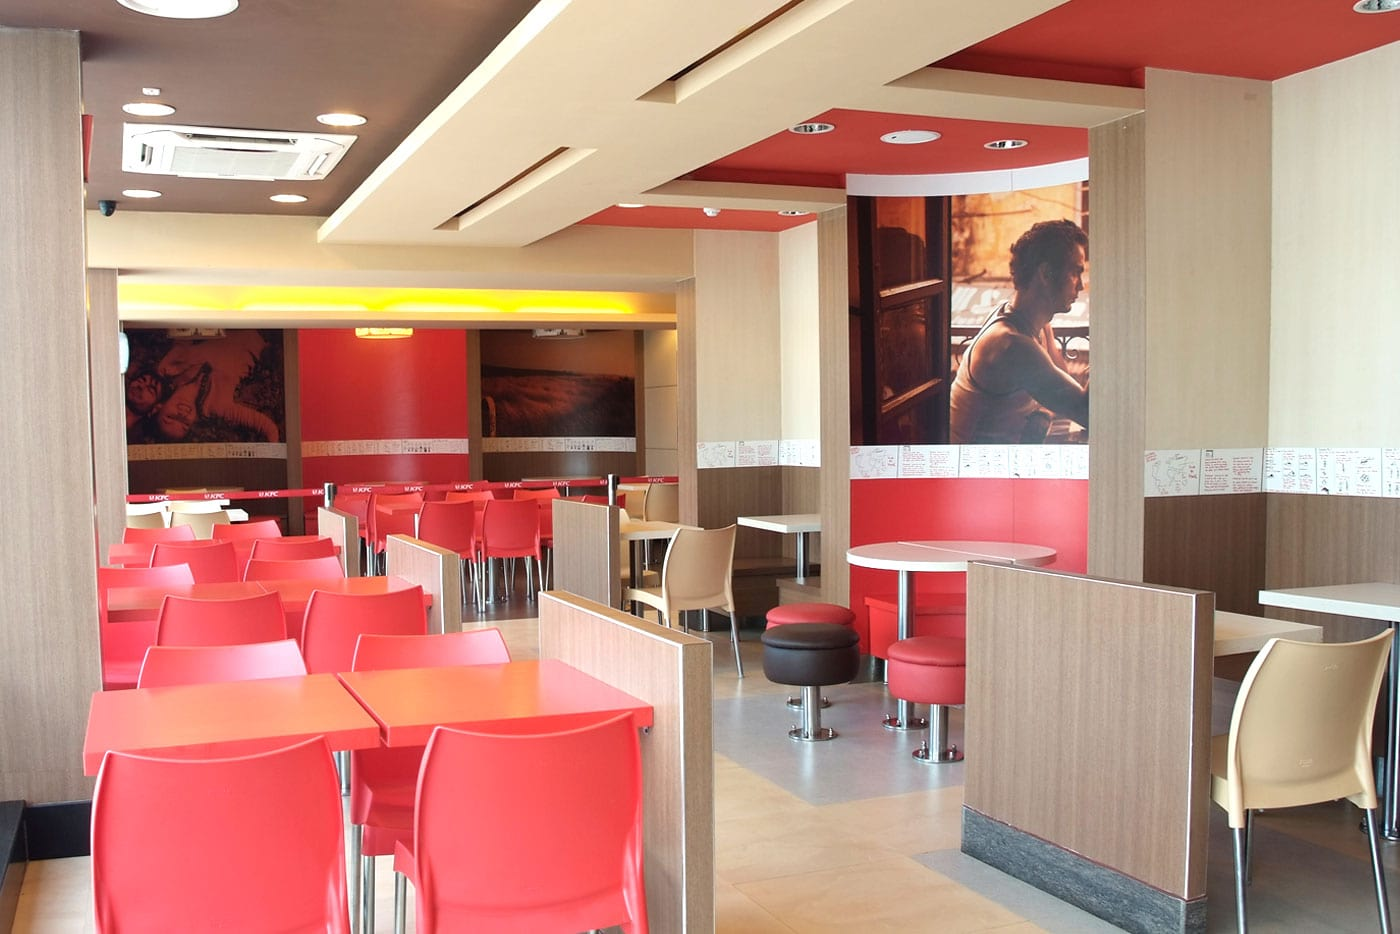 kfc restaurant red color theme setup perspective view